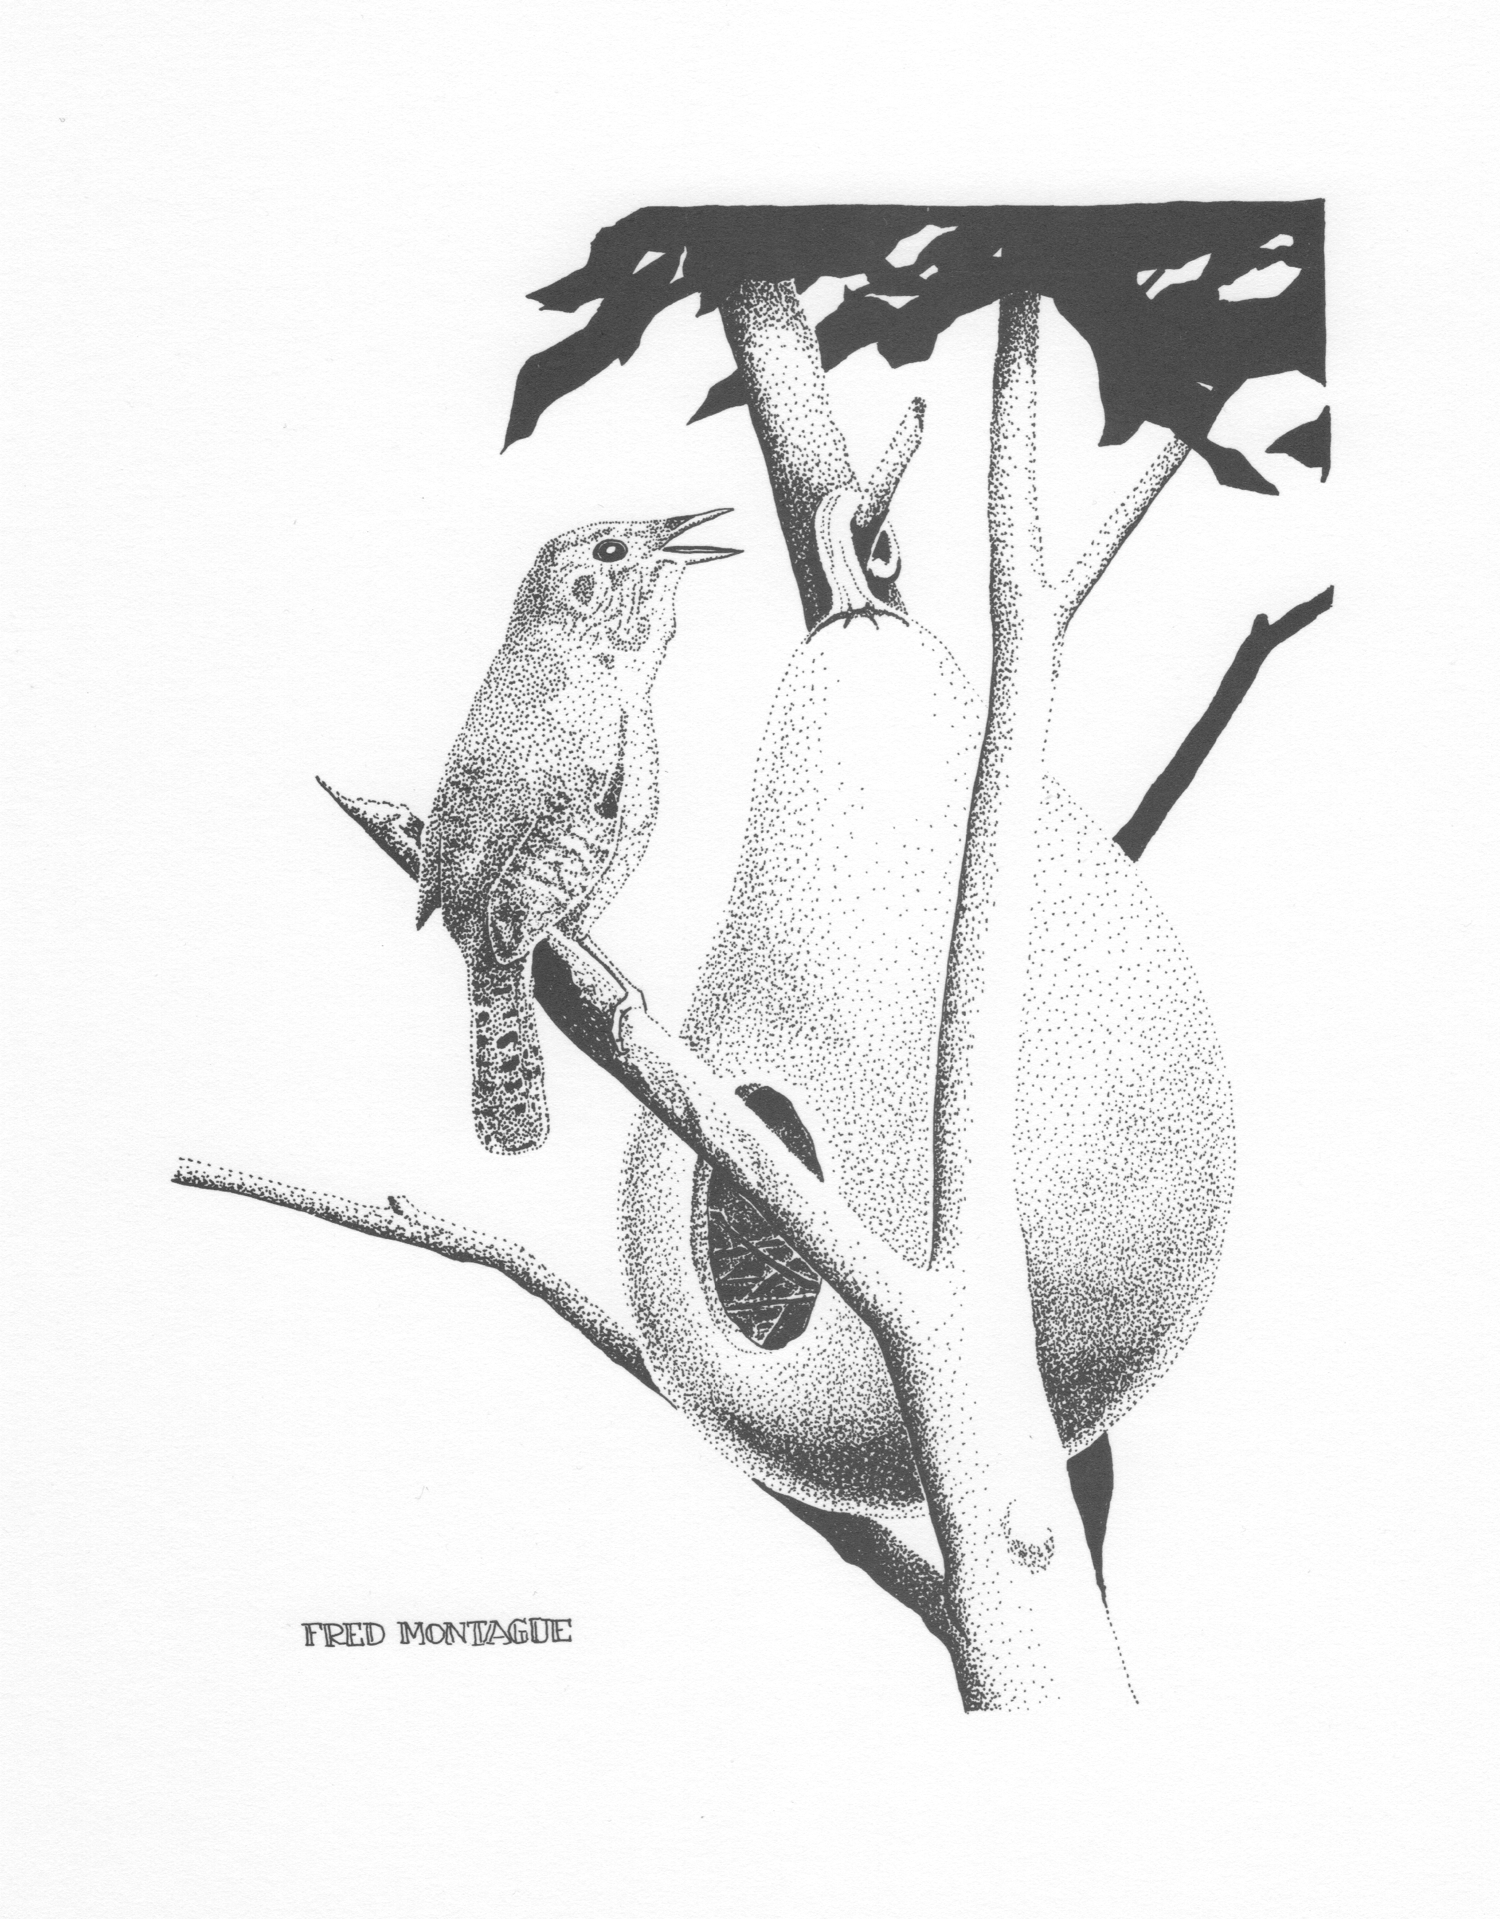 House Wren • © Fred Montague  $40 • Photolithograph • image5 x 6.5  matted 8 x 10   Edition size: 200 • status: available